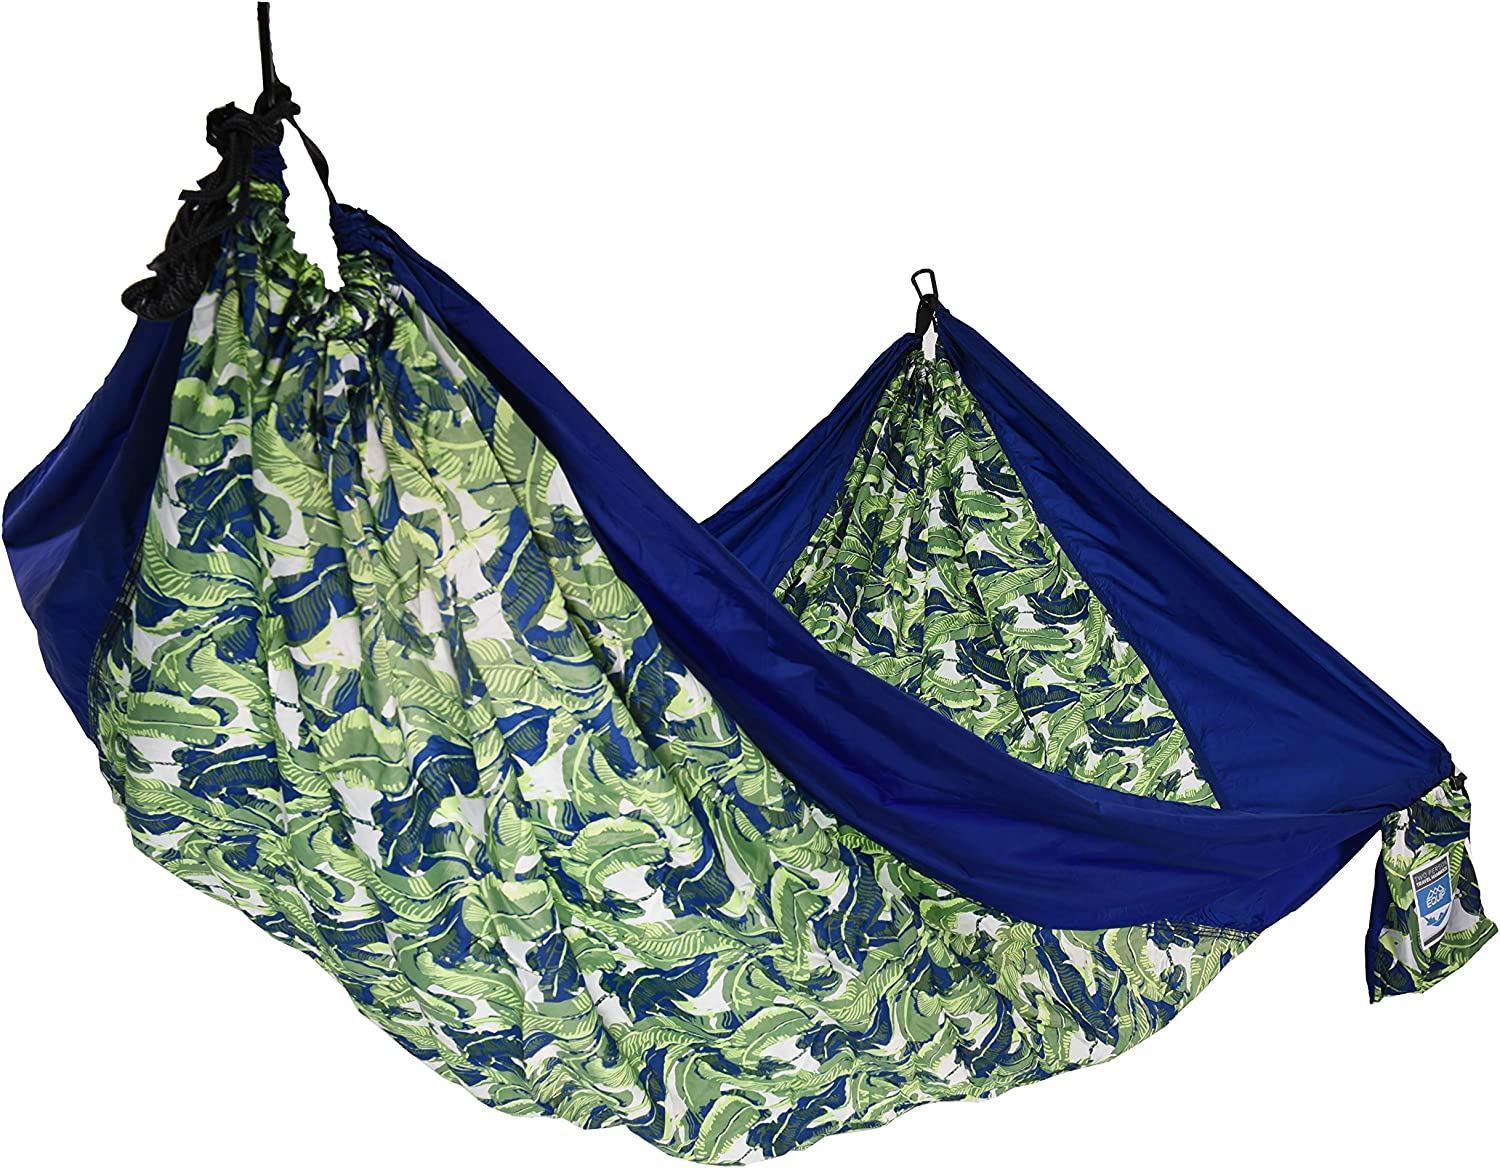 Equip 2p Travel Hammock Navy Palm